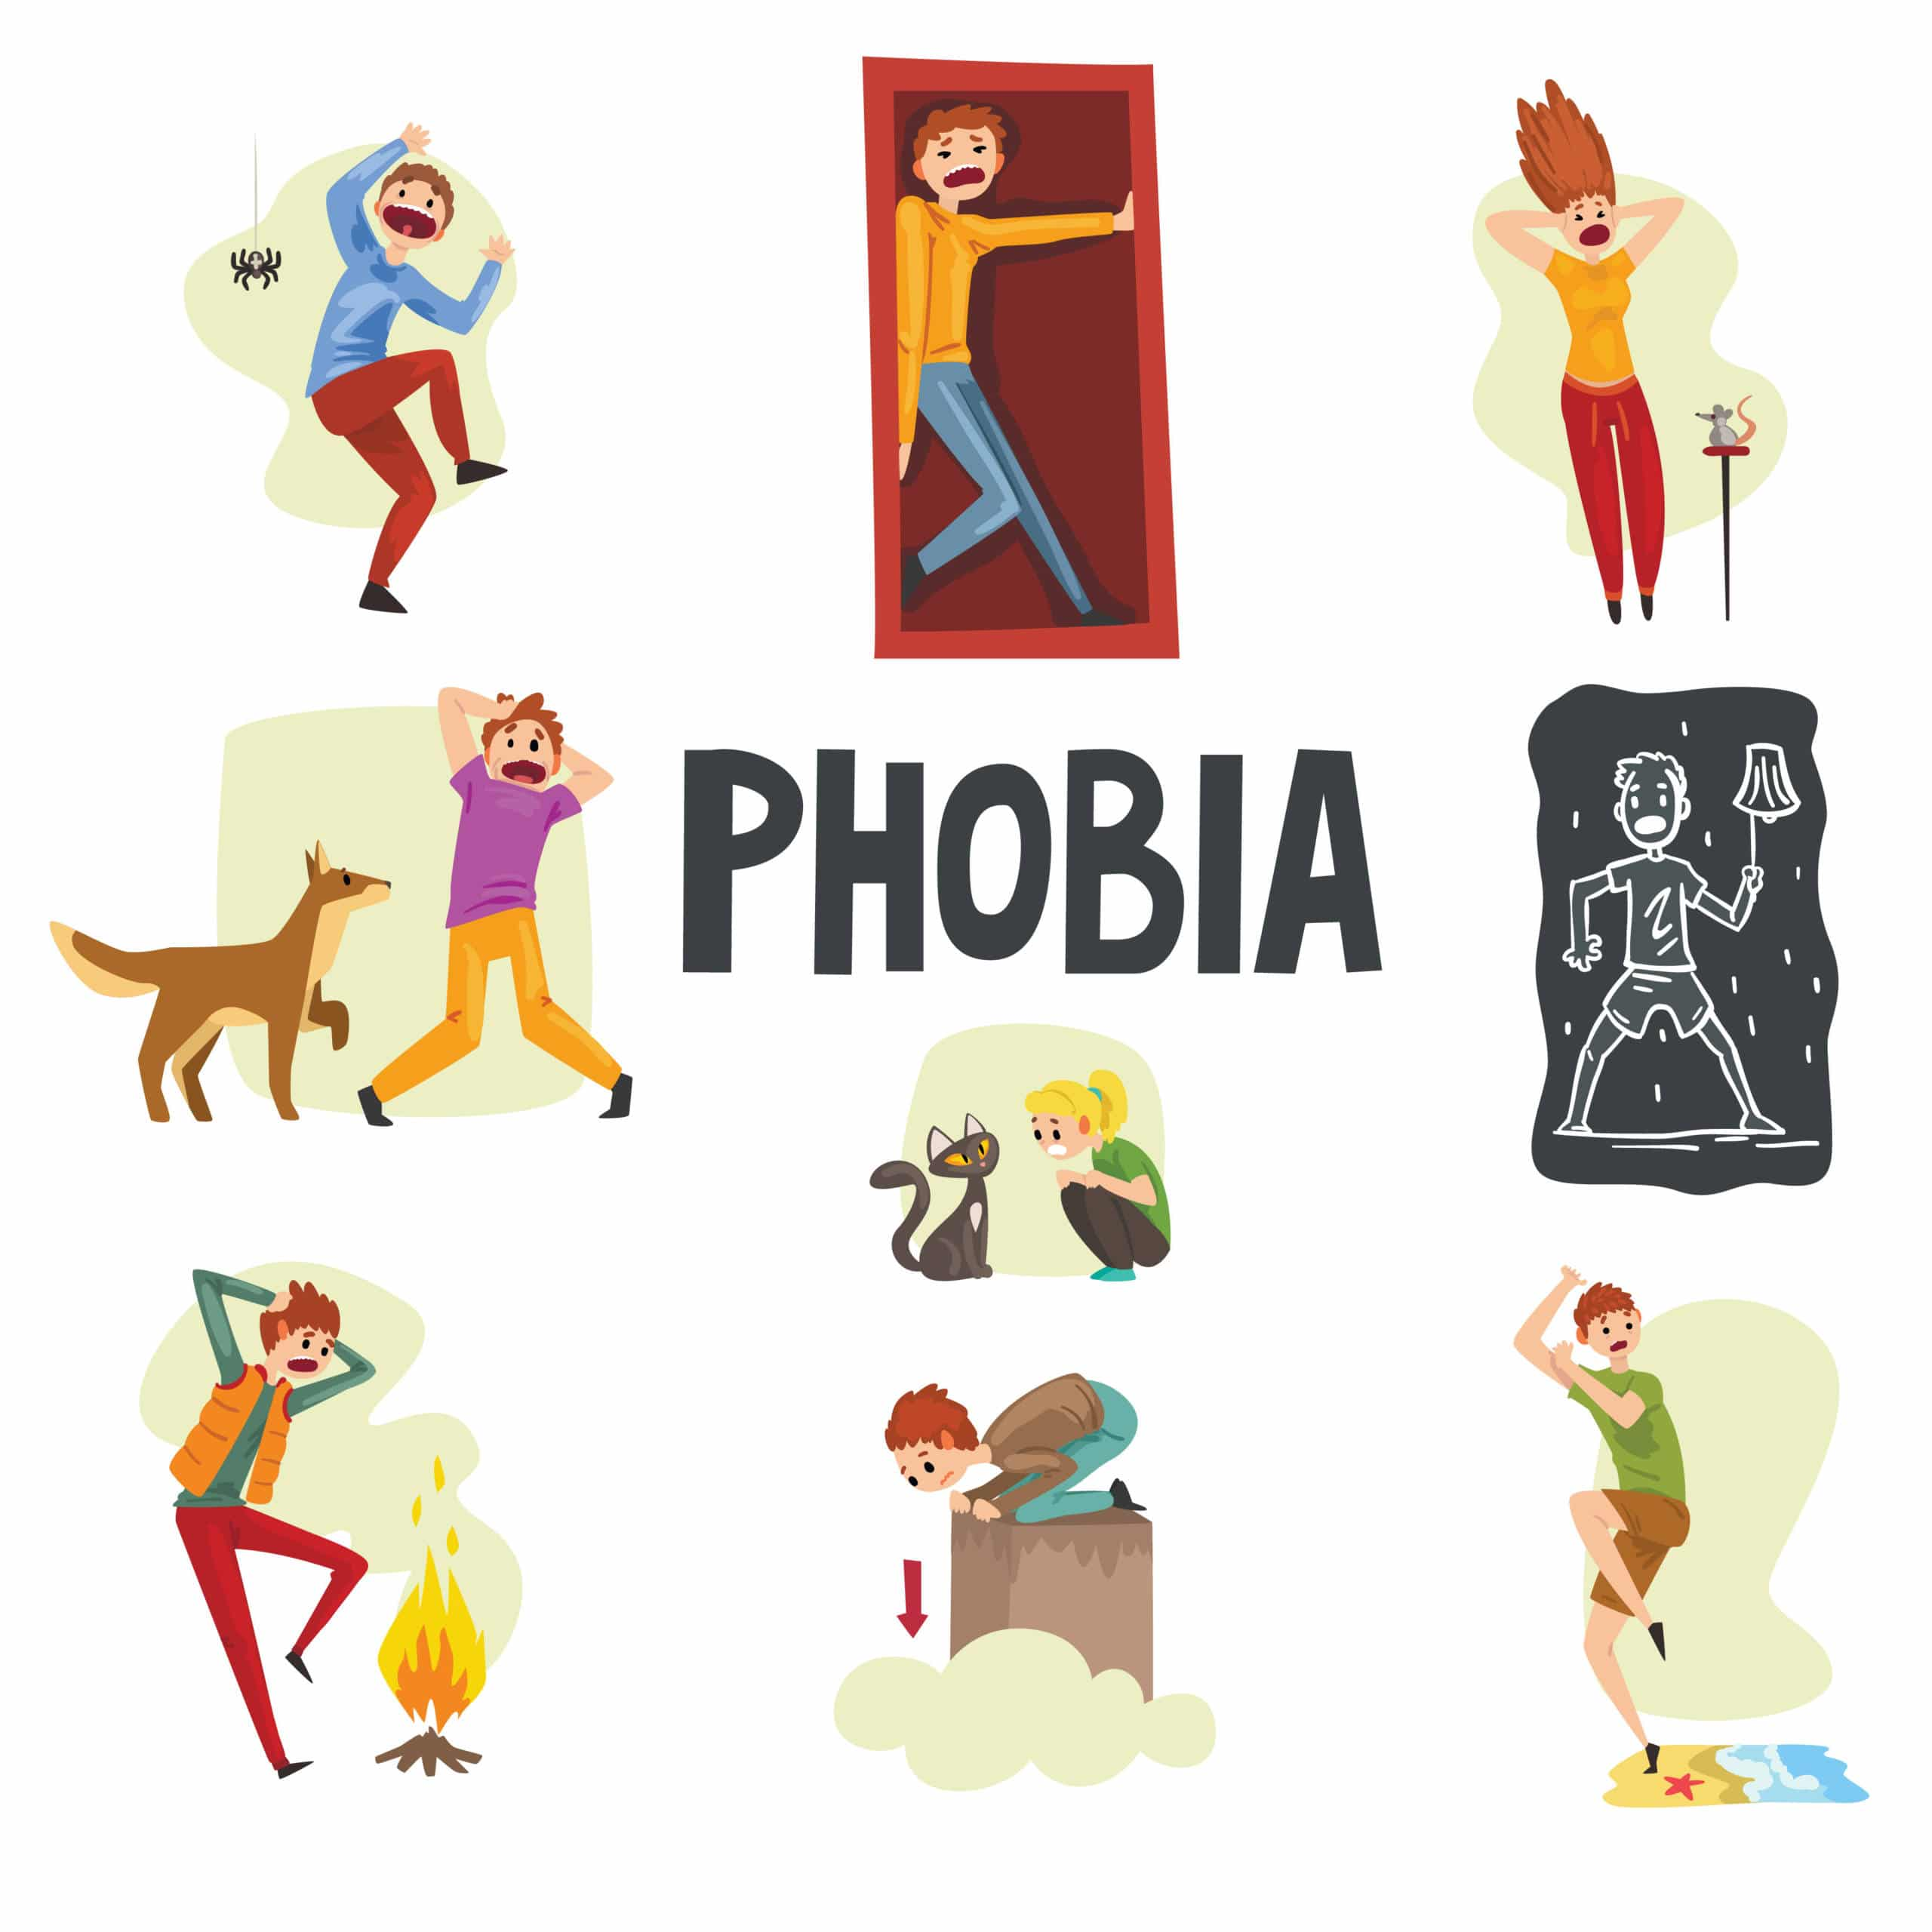 illustrations of people suffering from various phobias